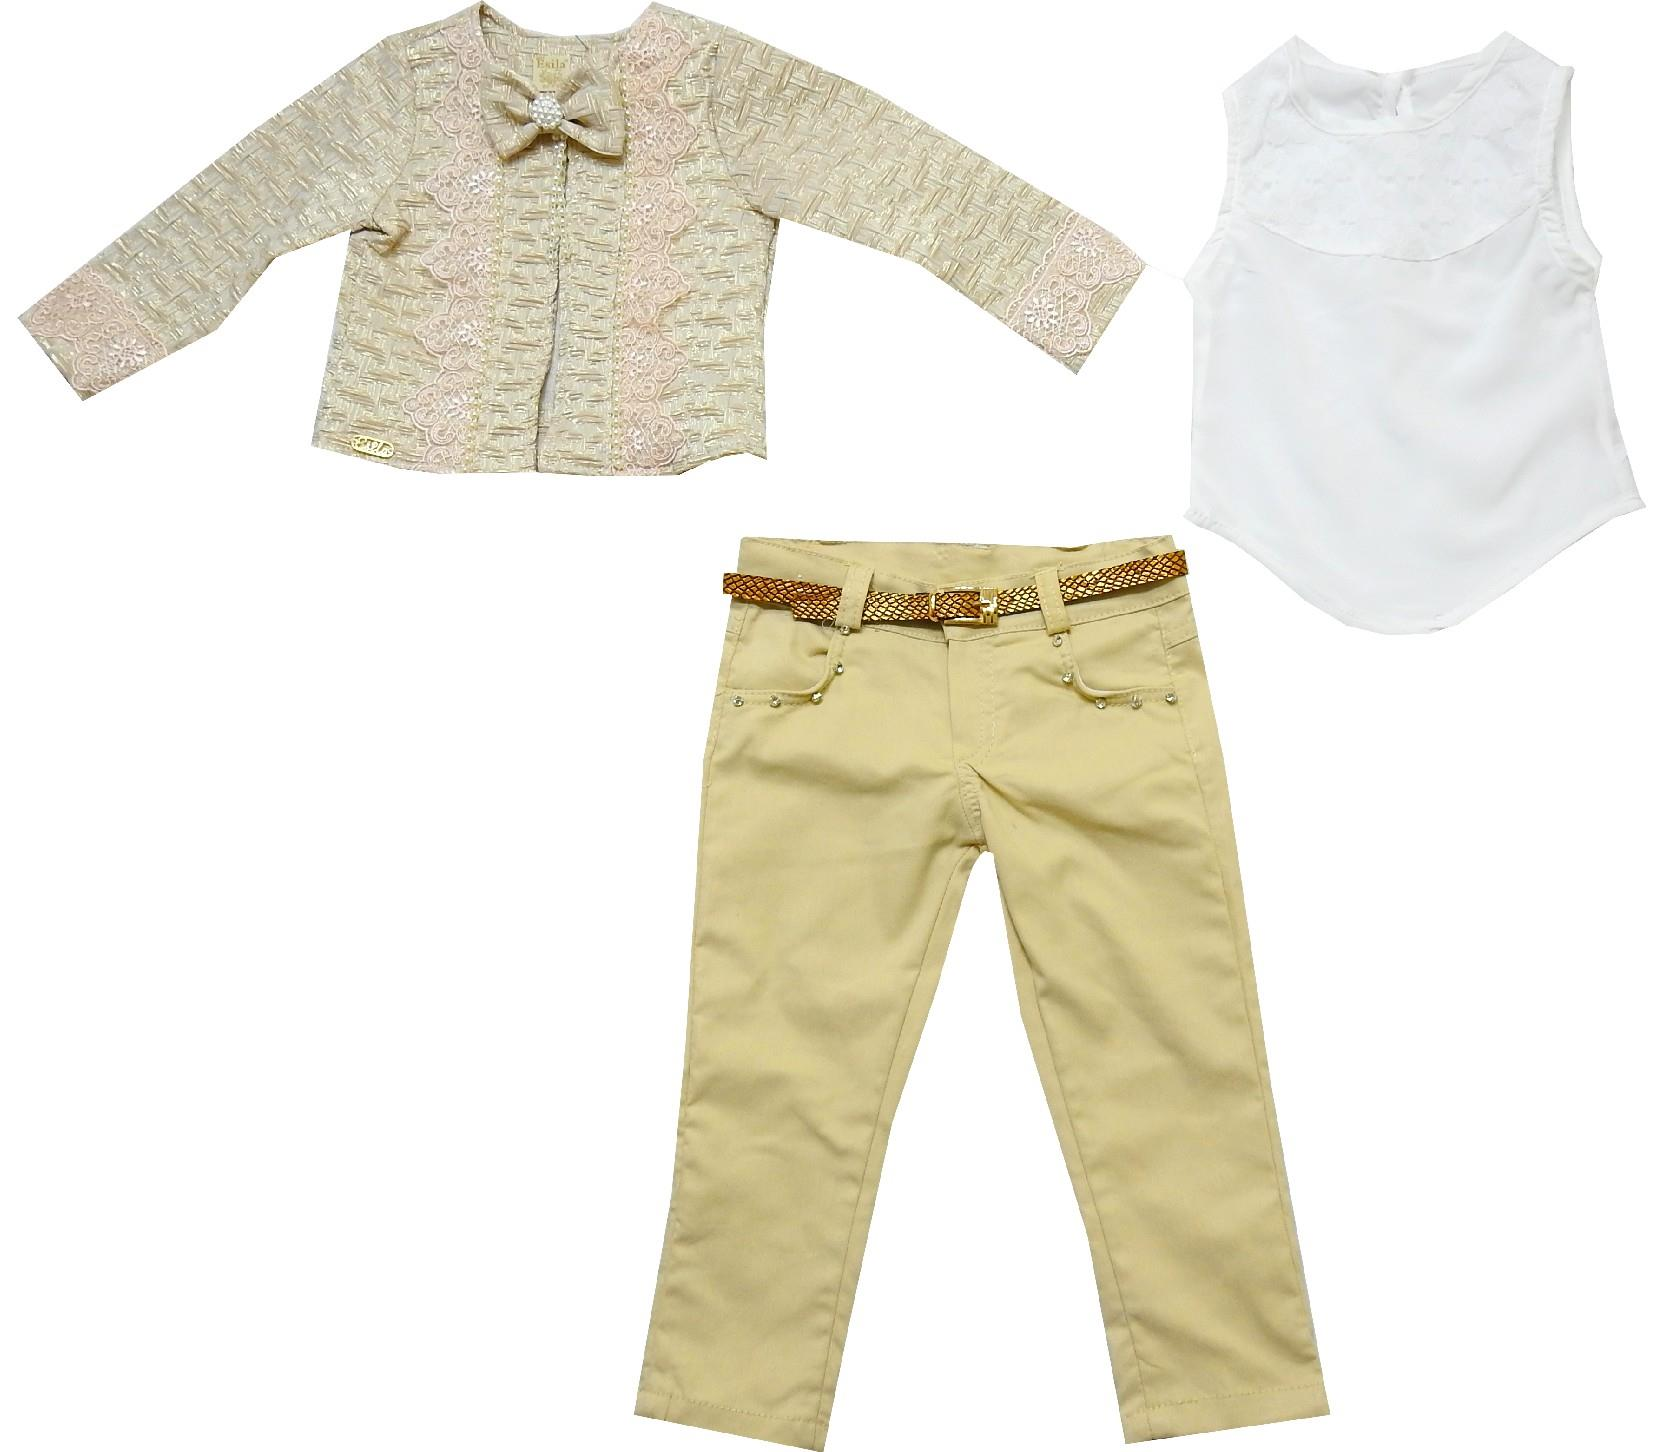 WHOLESALE LACE FABRIC EMBROIDERY JACKET, ATHLETE, PANTS TRIPLE SET FOR GIRL (2-3-4-5 AGE)